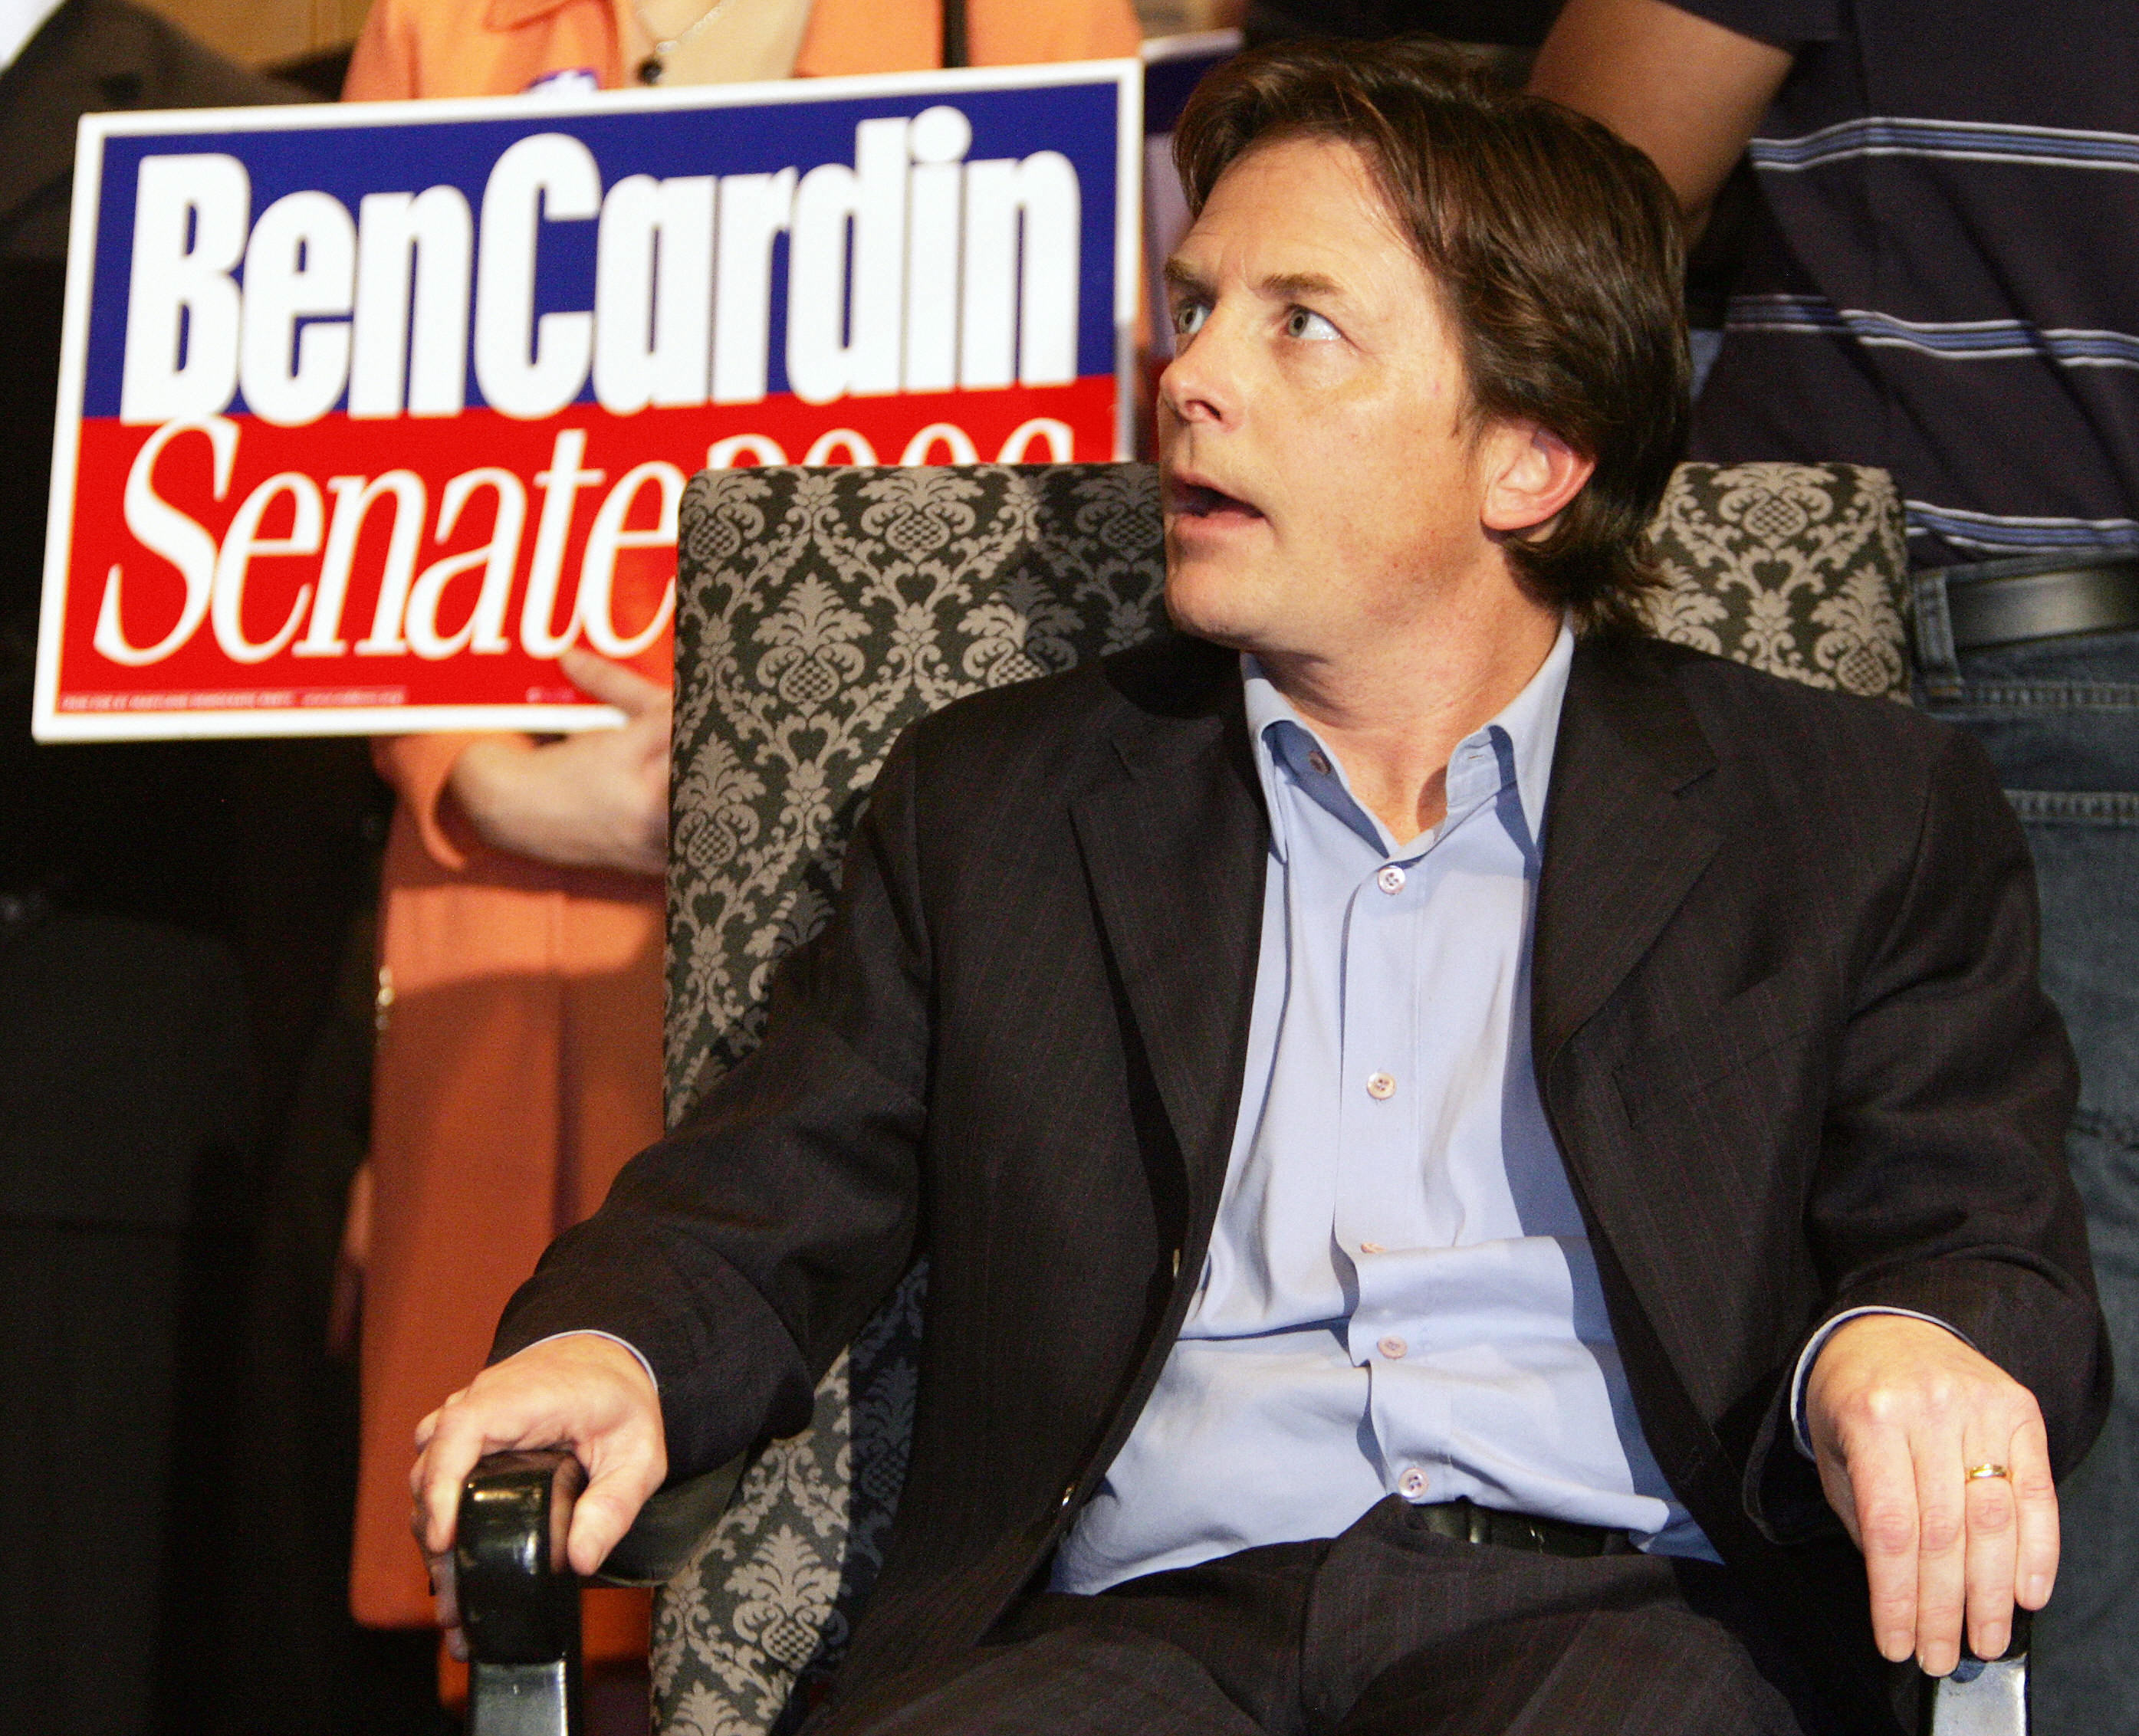 Michael J. Fox sitting in a chair at a political rally